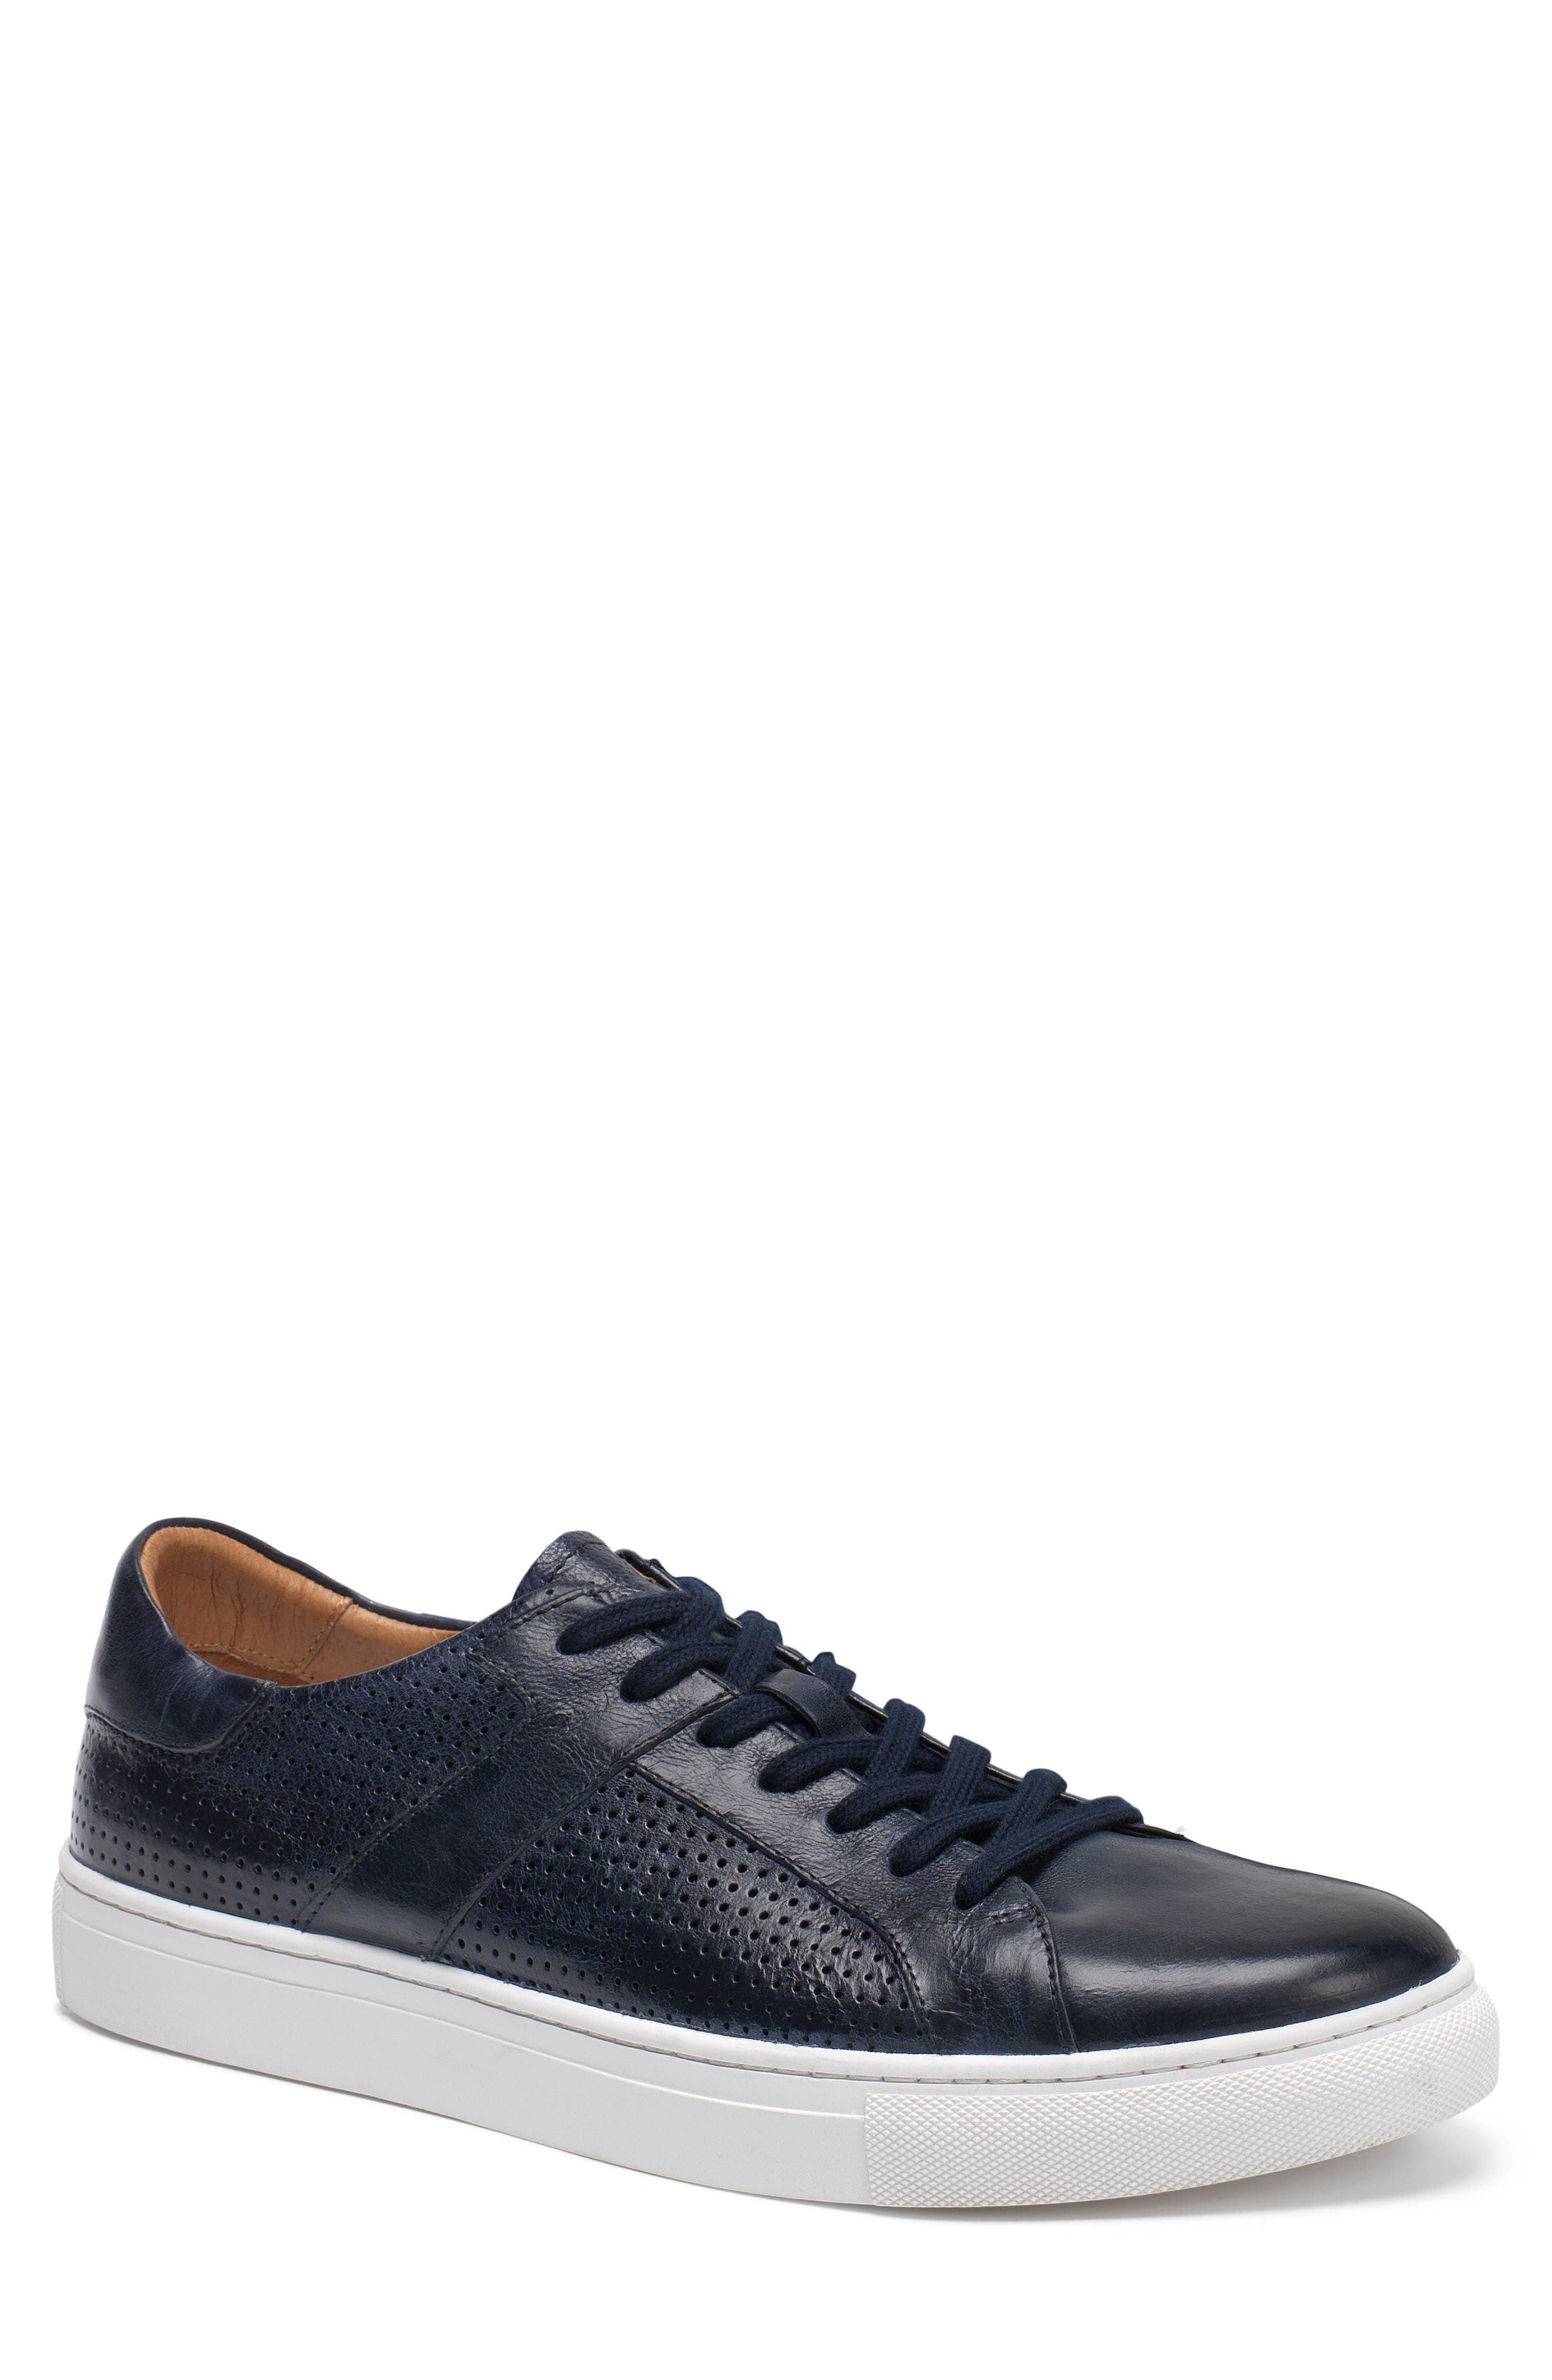 Aaron Sneaker,                             Main thumbnail 1, color,                             Navy Leather